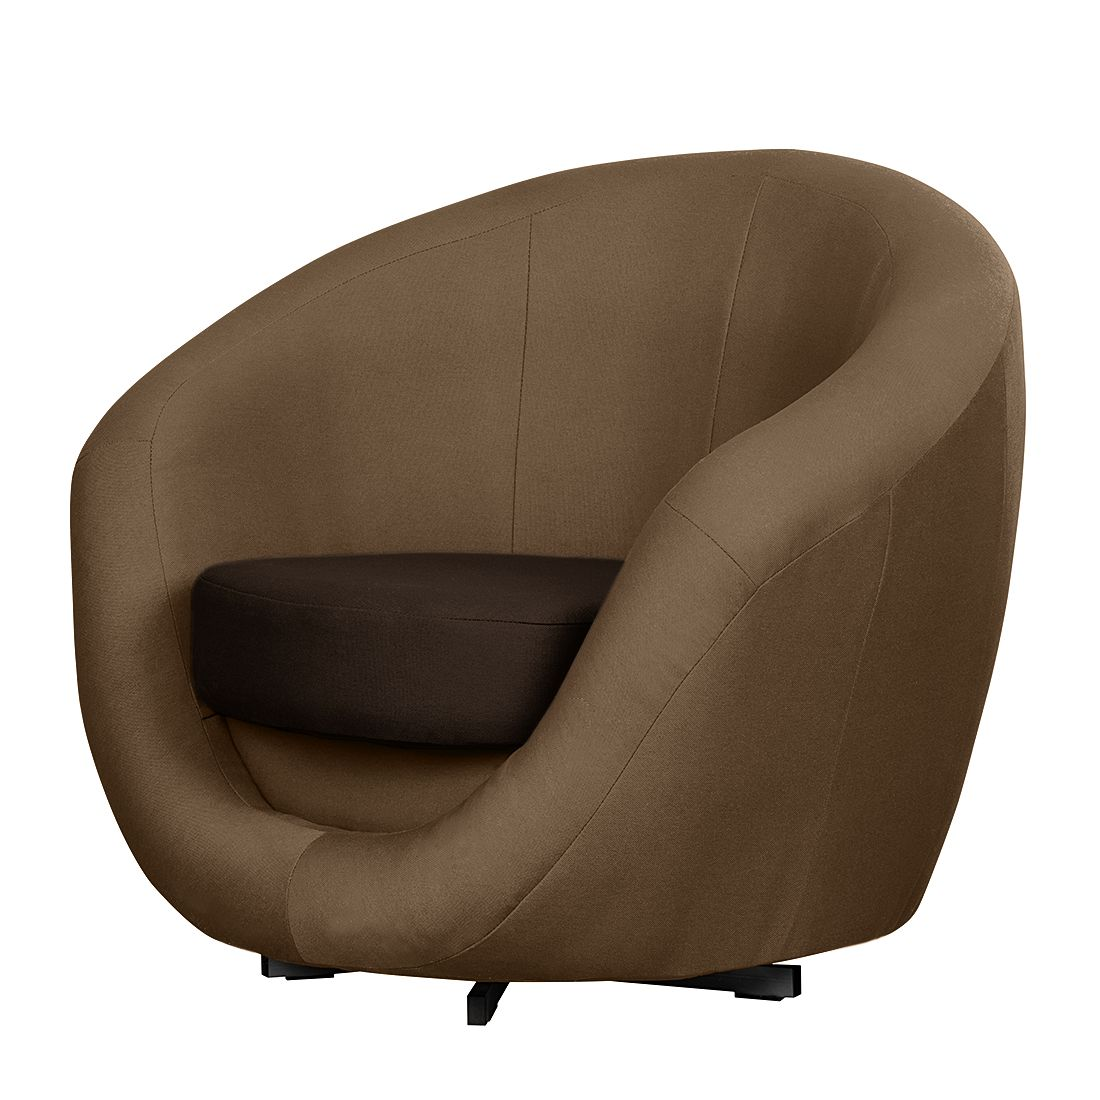 Fauteuil pivotant Marvin - Tissu - Taupe / Mocca, Fredriks